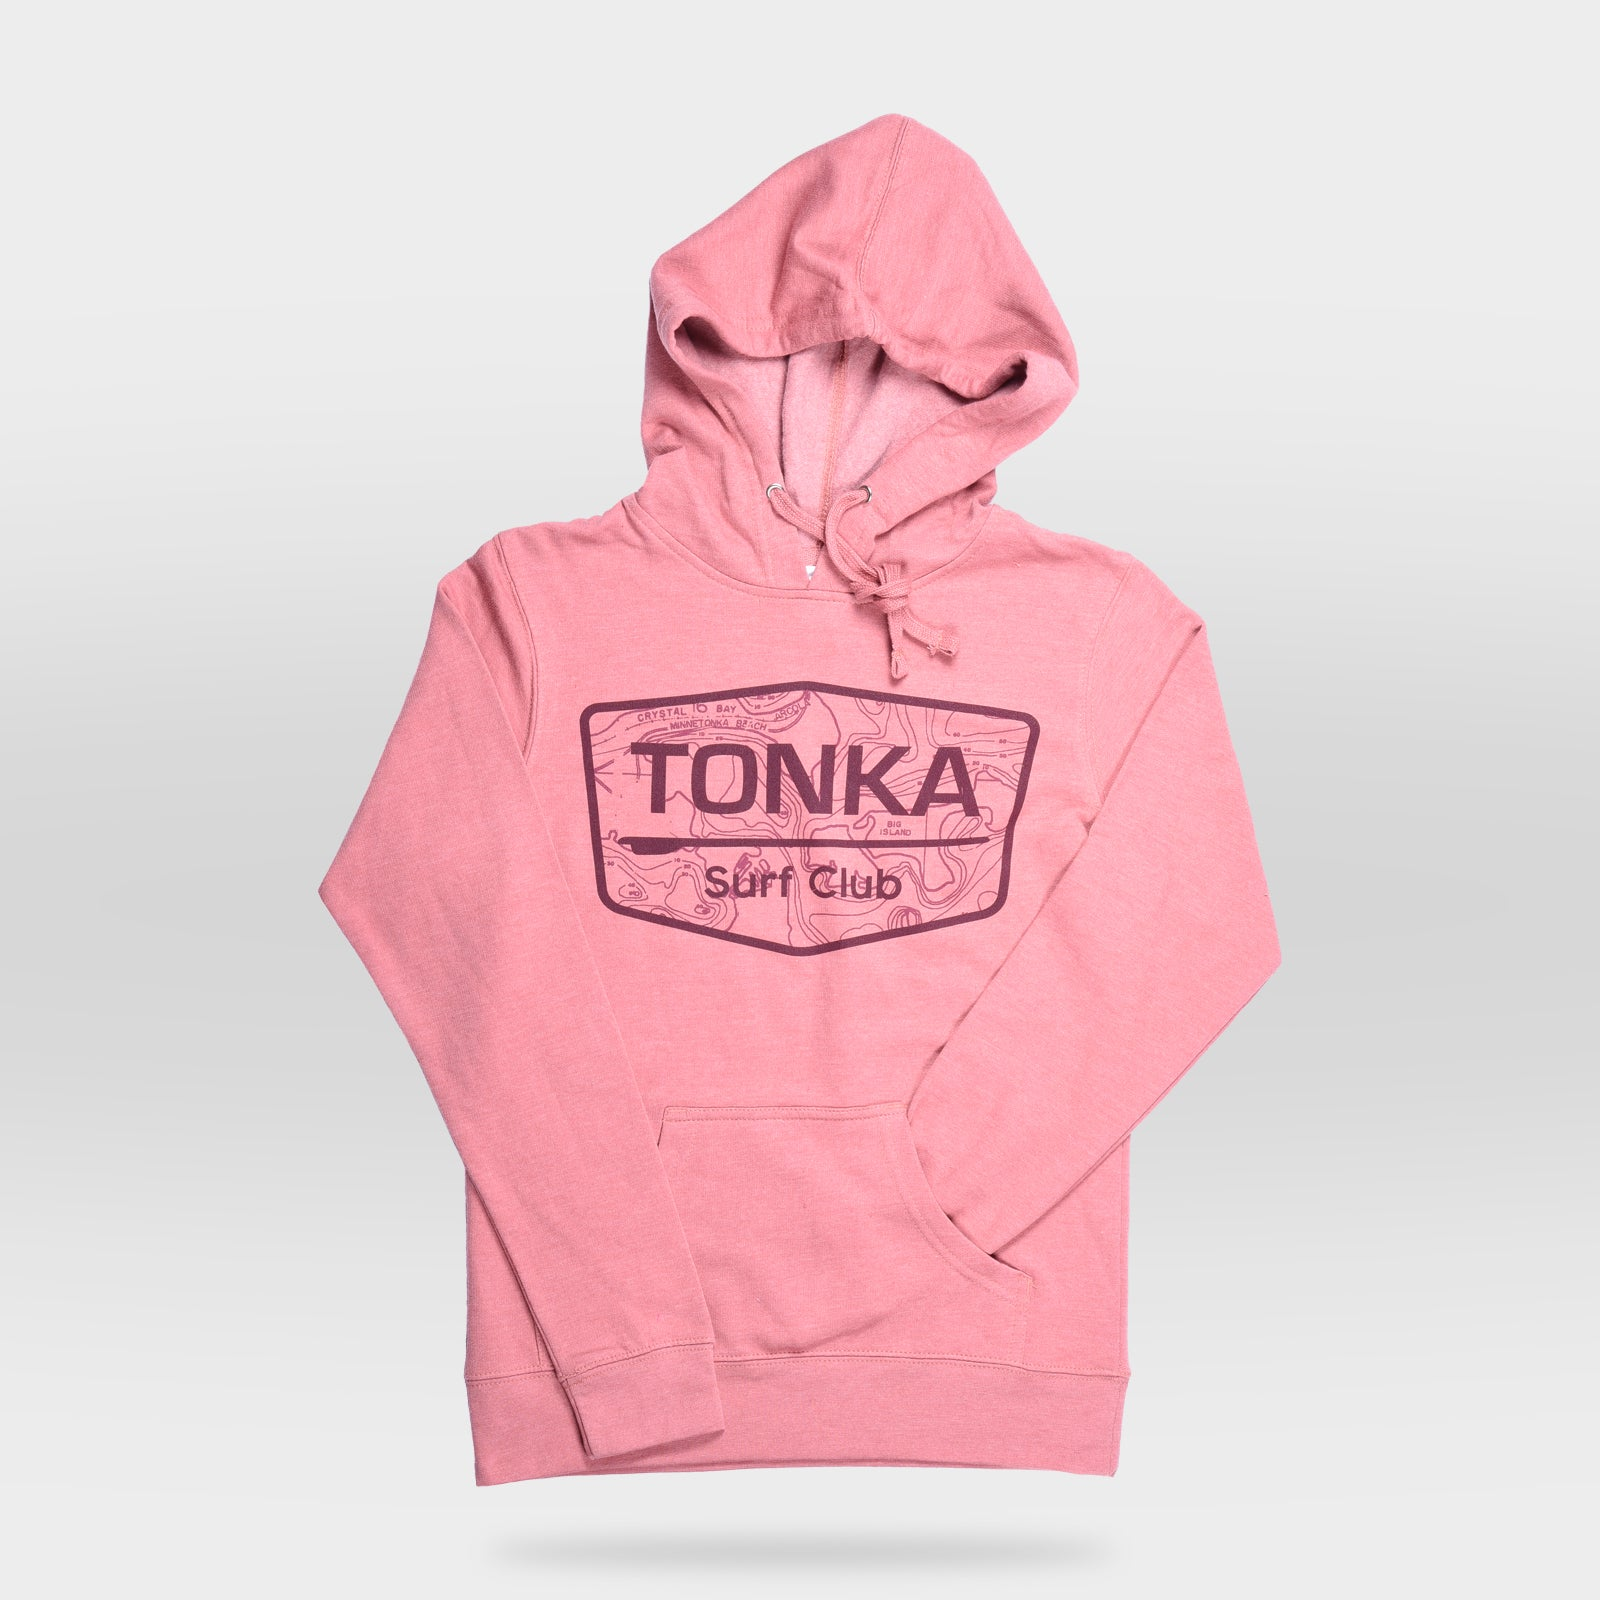 HOODIES :: TONKA Surf Club Sweatshirt - Women's / Juniors